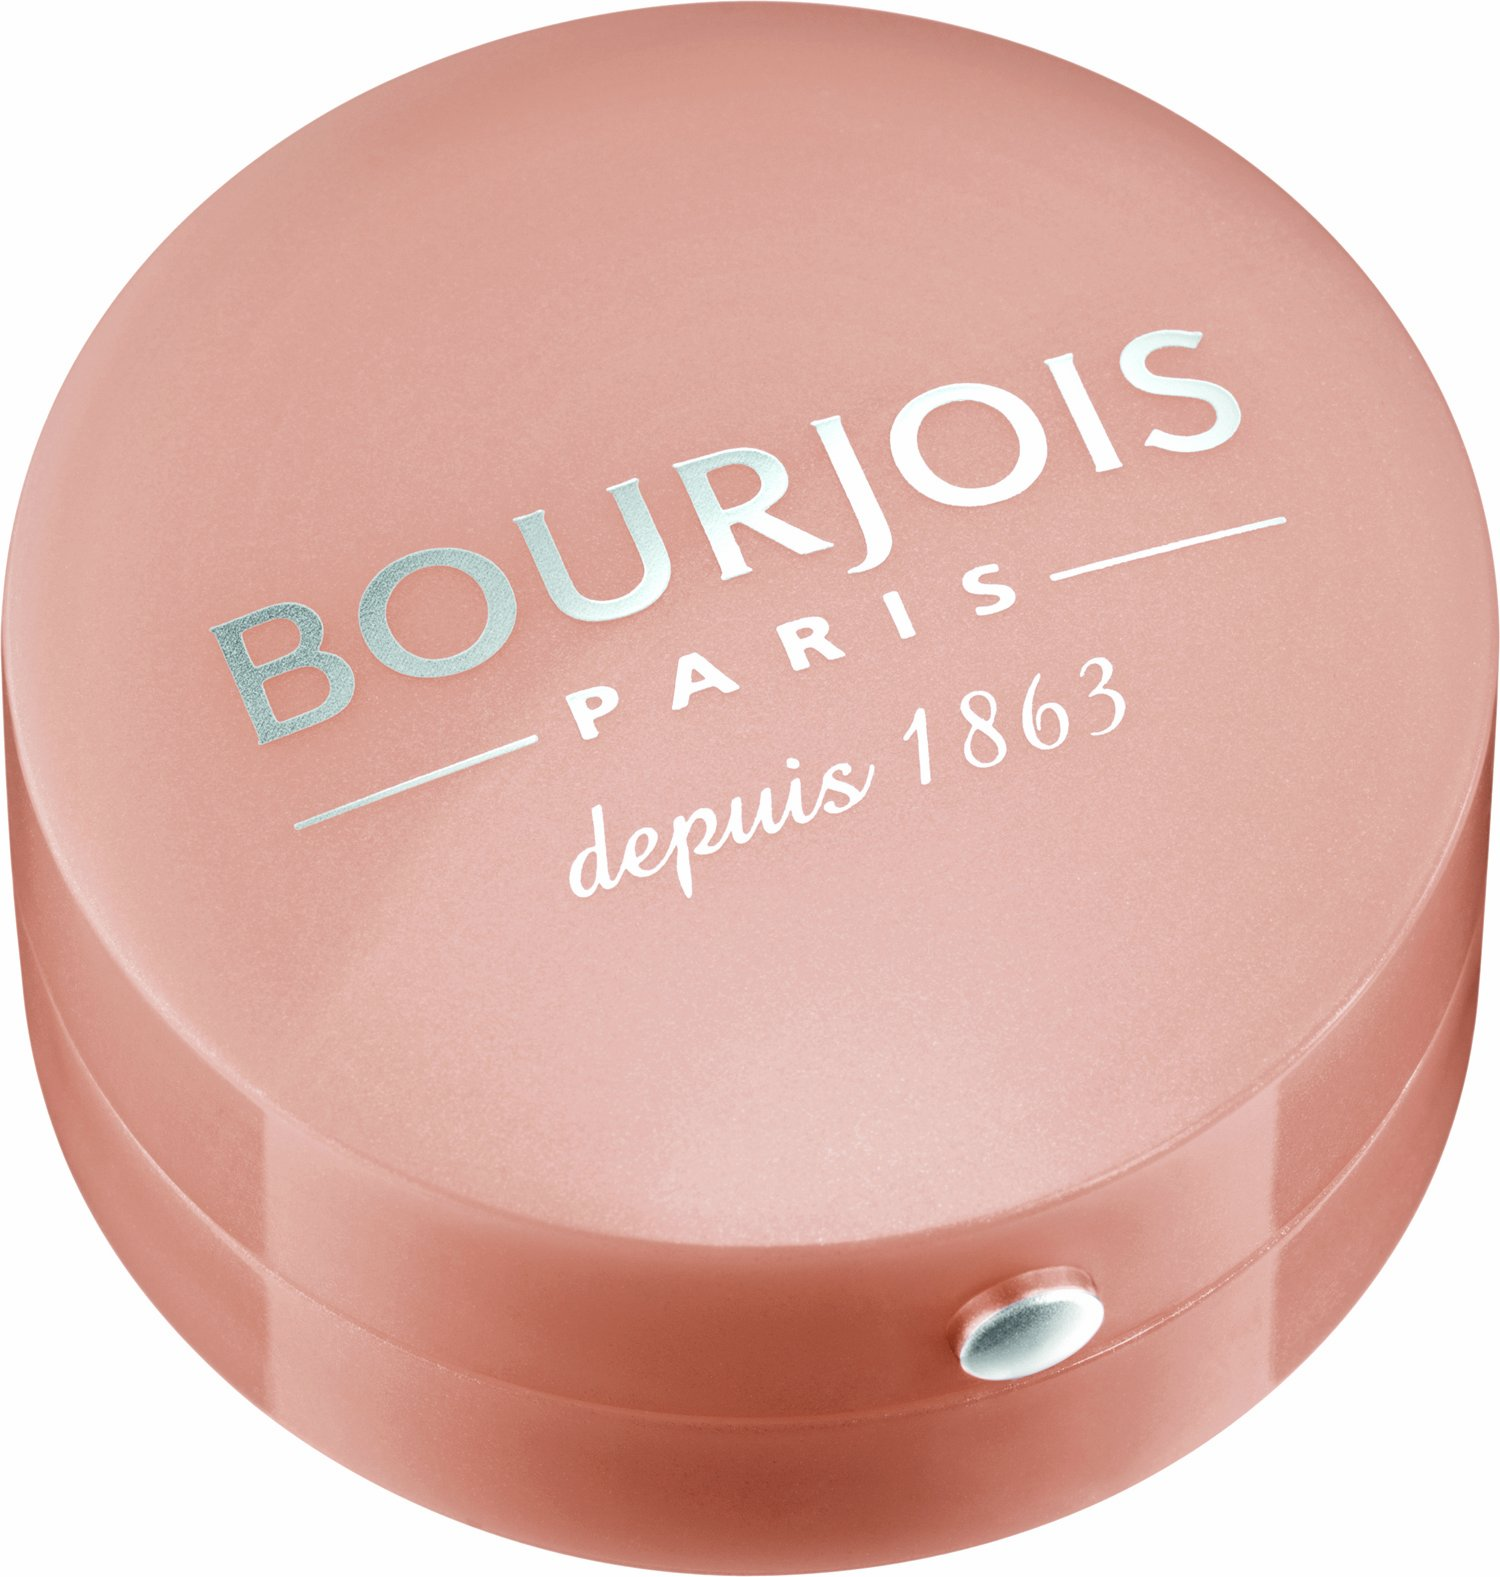 Bourjois Boite Ronde Ombre A Paupieres Eyeshadow for Women, No. 08 Beige Rose, 0.05 Ounce